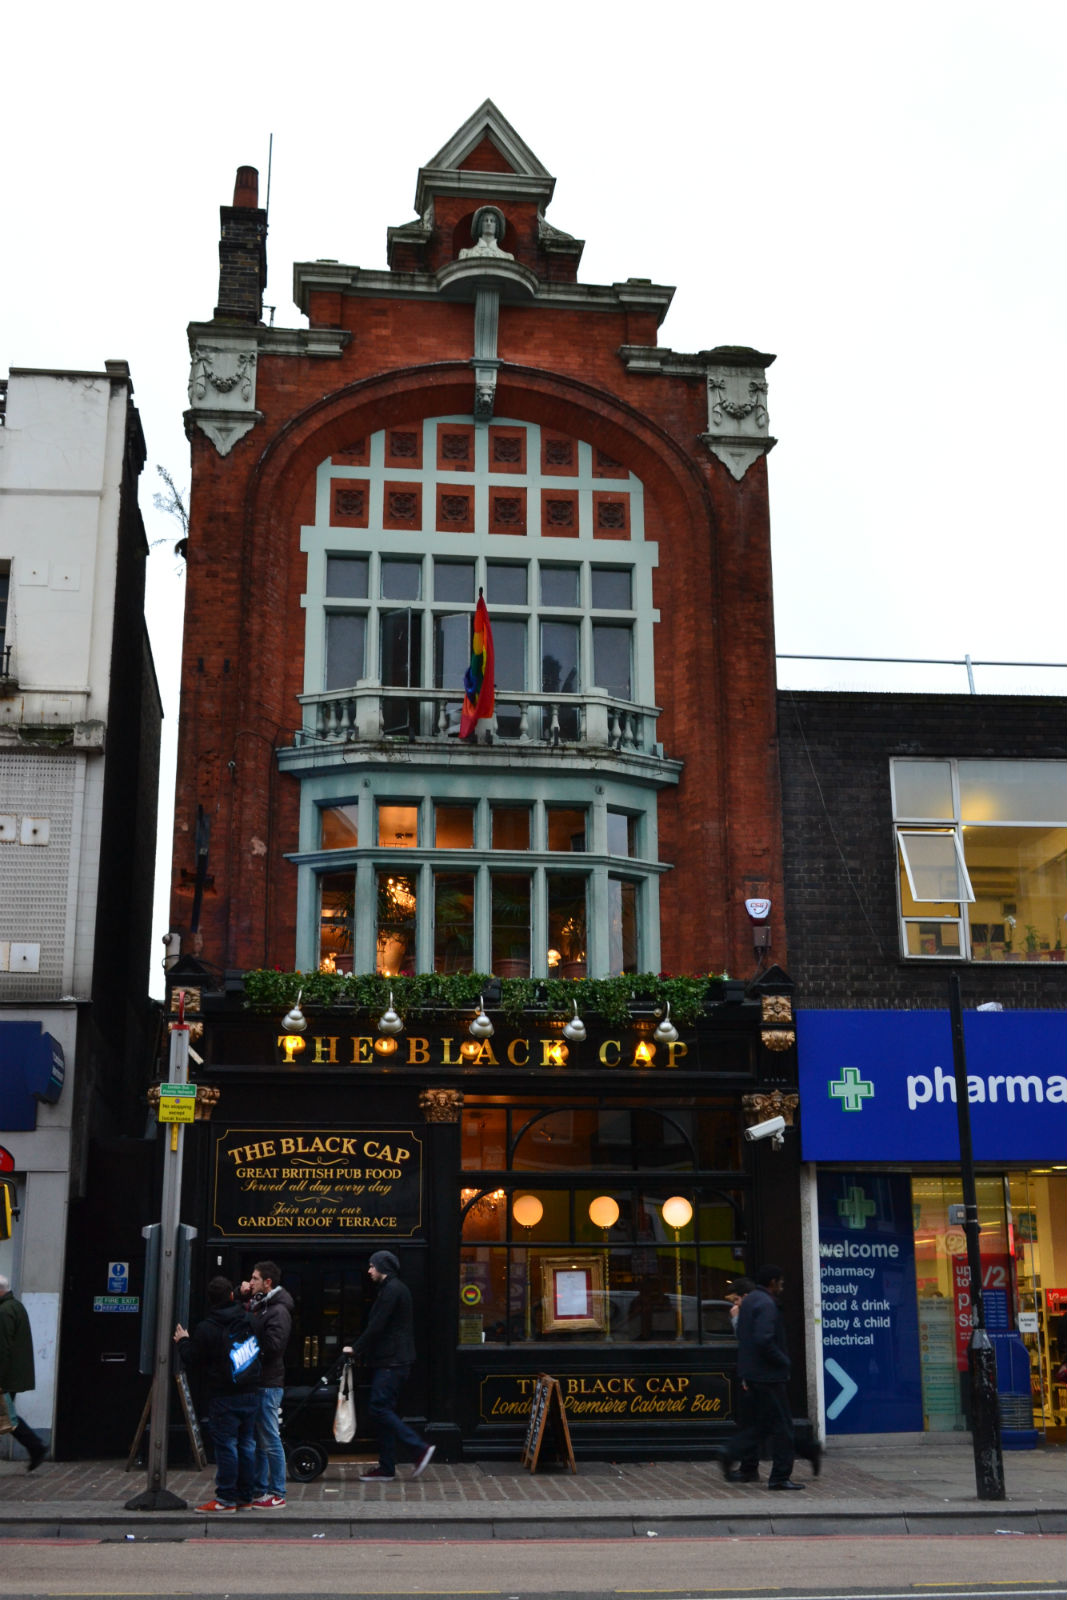 A beautiful gabled building on an unremarkable stretch: the Black Cap. Photo: Stephen Emms/ LBTM